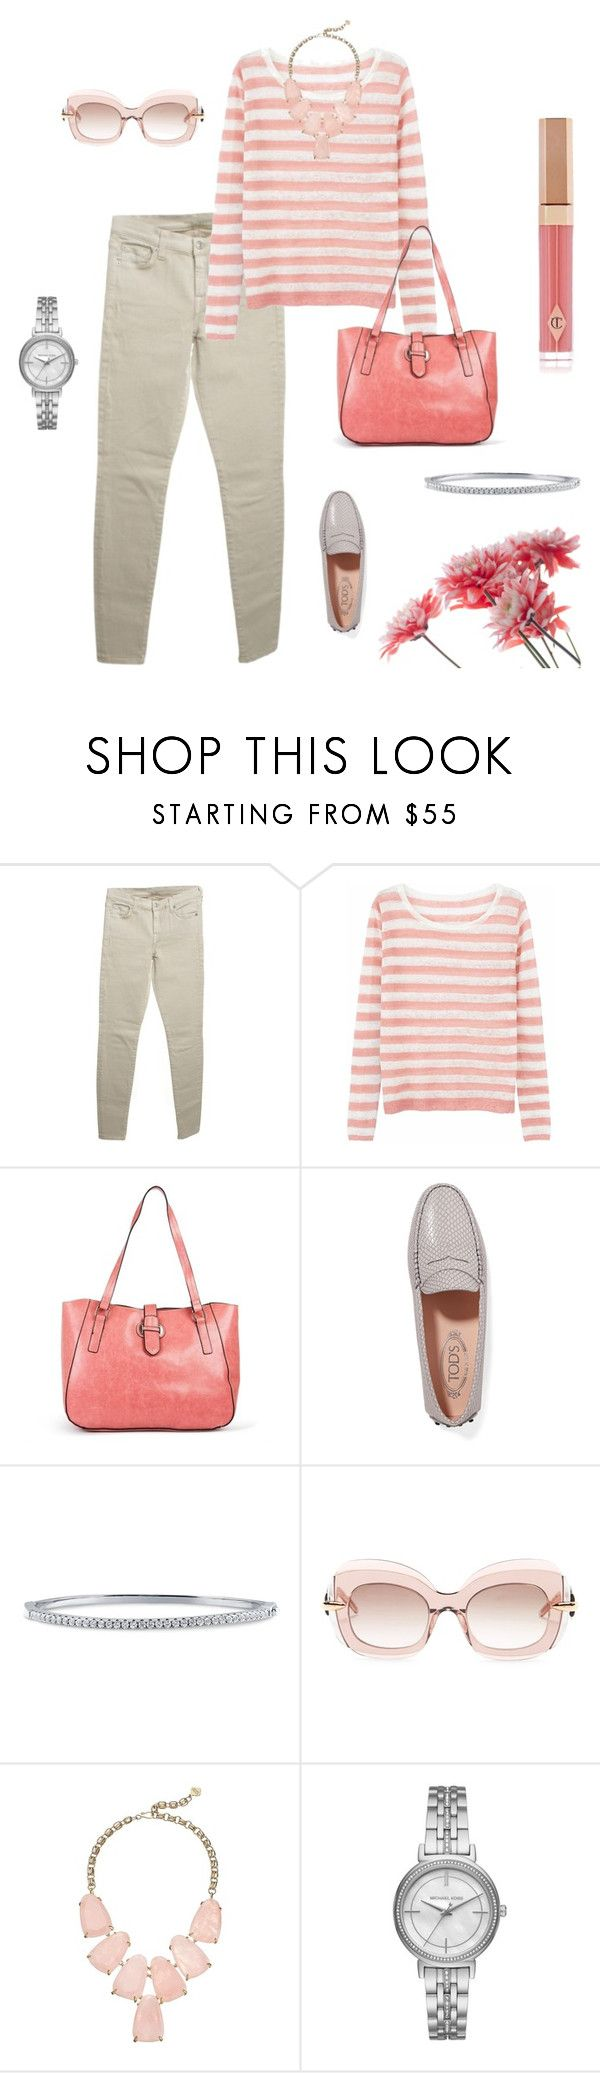 """""""Spring Style:  Salmon Pink"""" by lisakay1 on Polyvore featuring 7 For All Mankind, Ille De Cocos, New Directions, Tod's, BERRICLE, Pomellato, Kendra Scott and Michael Kors"""